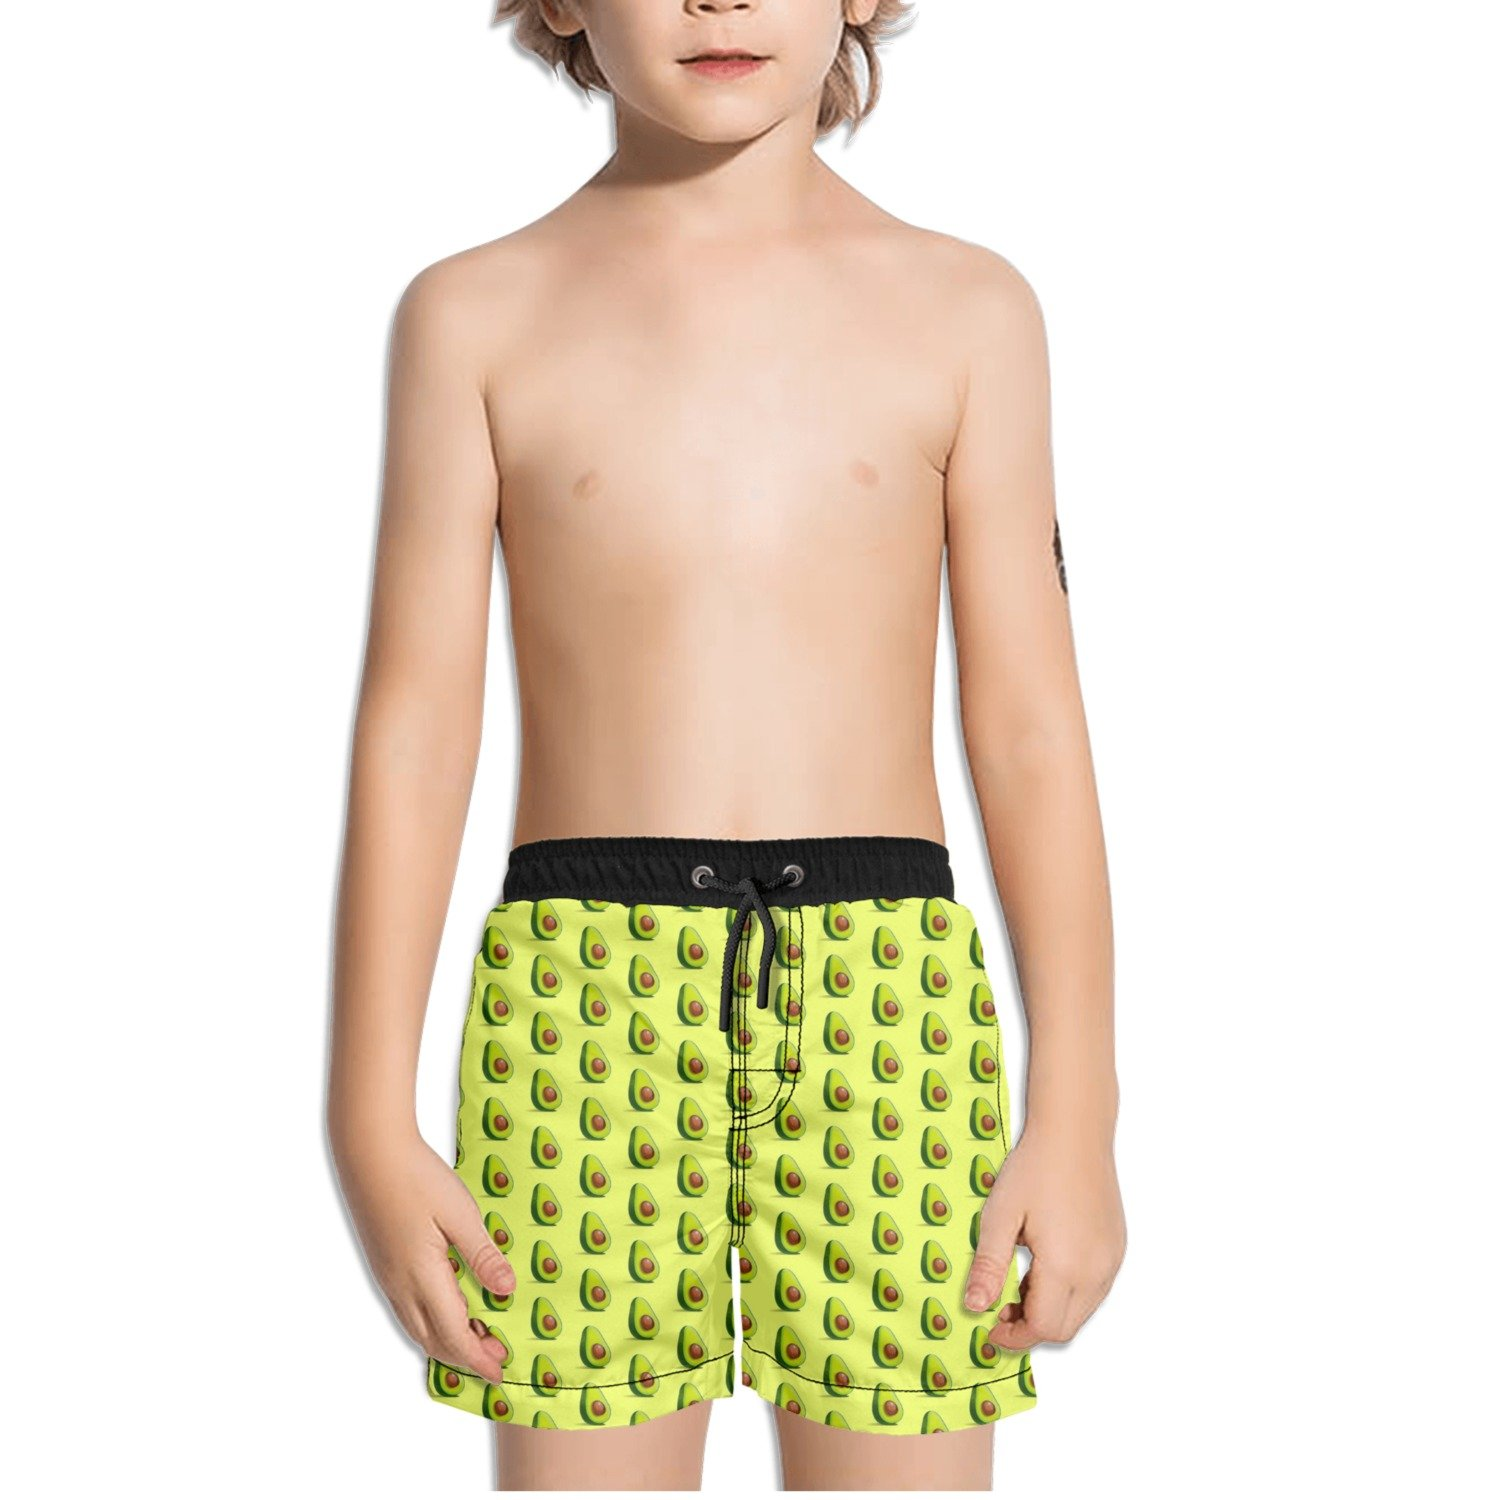 FullBo Tiny Avocado Fruit Pattern Little Boys Short Swim Trunks Quick Dry Beach Shorts